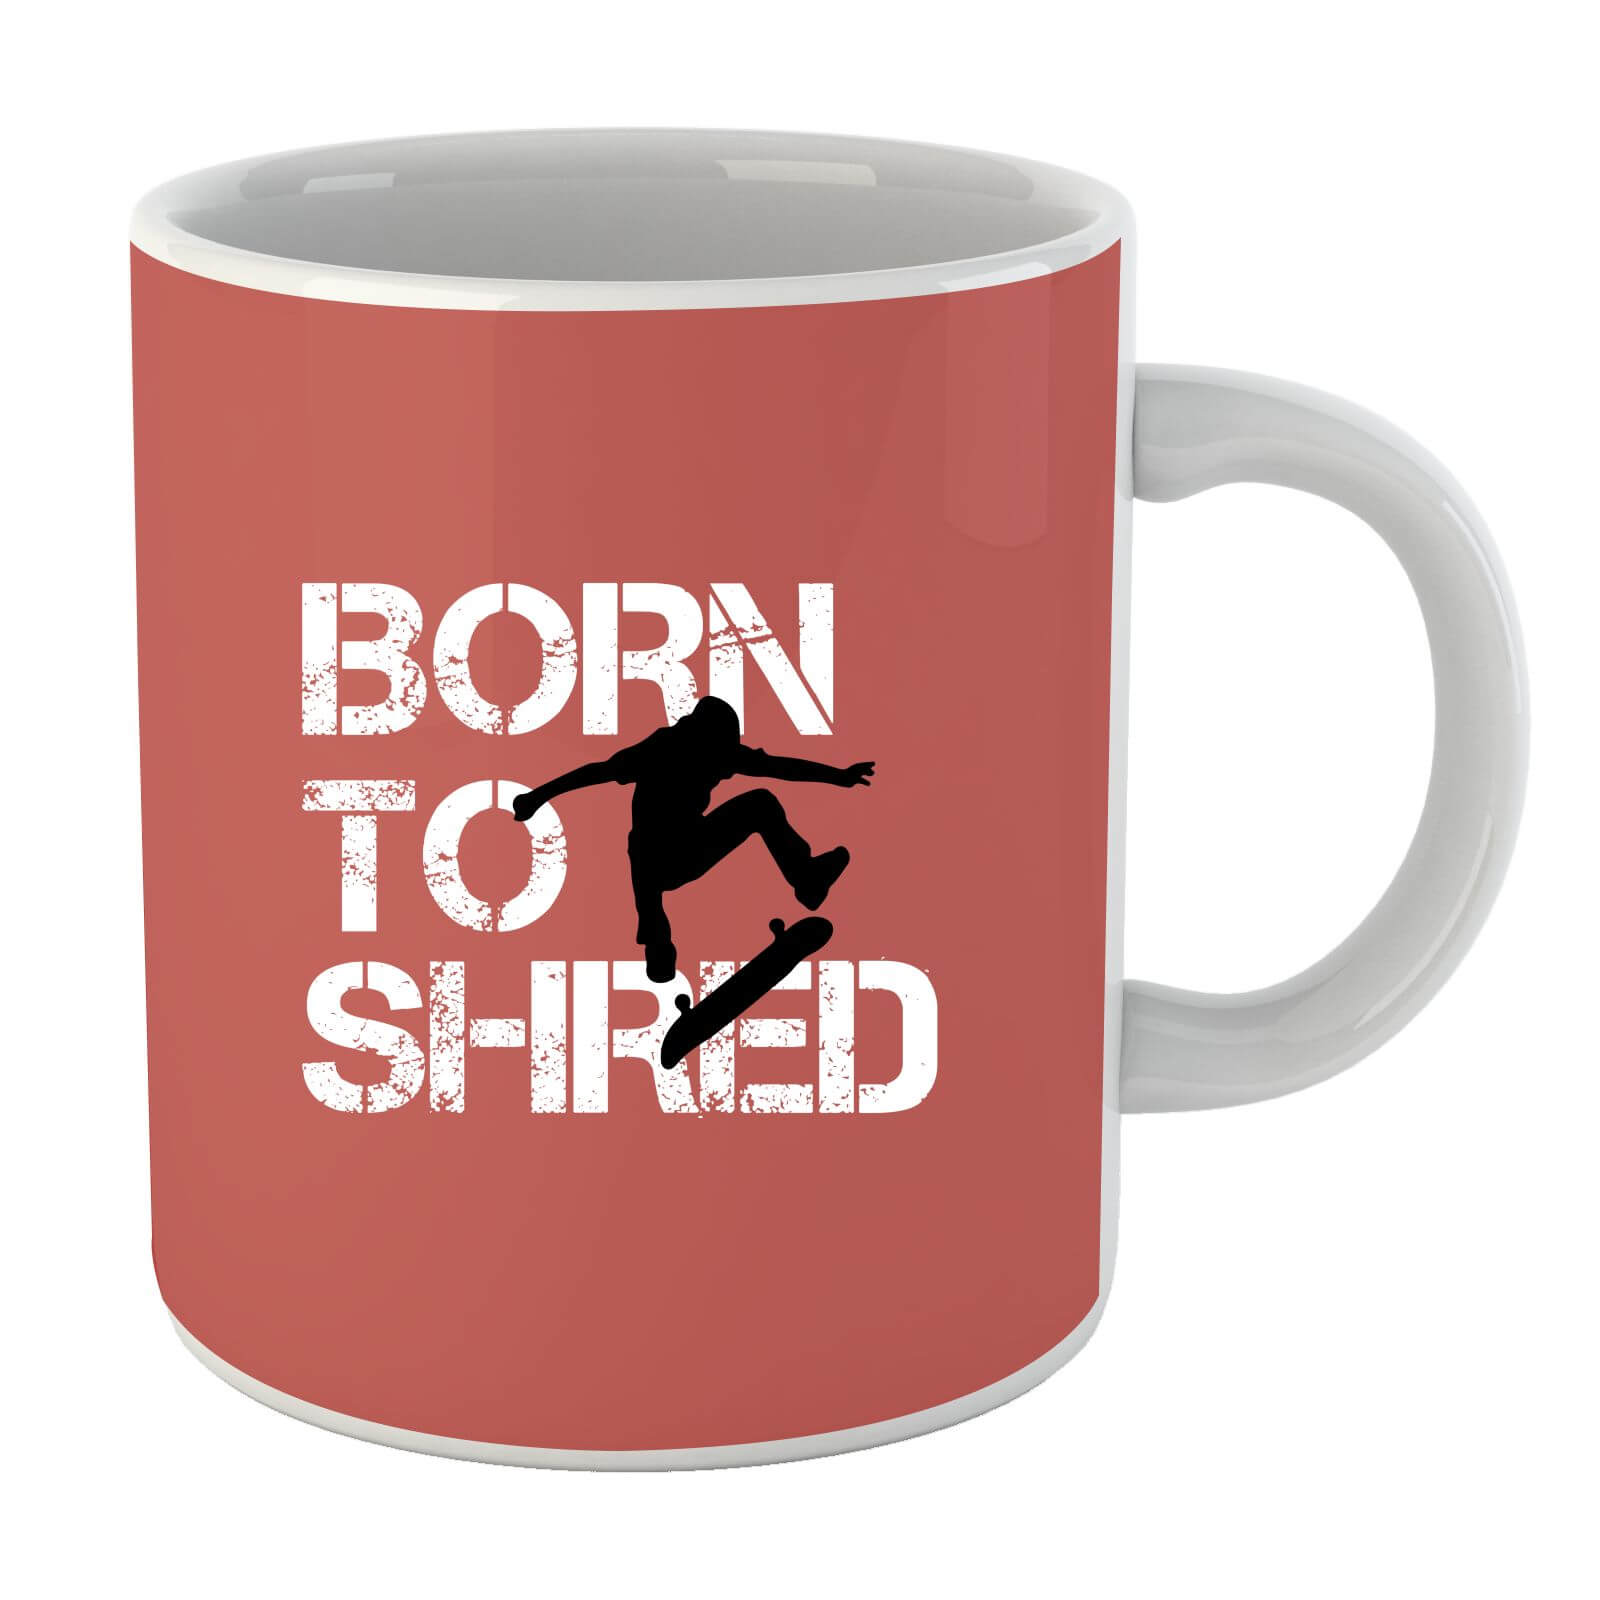 Born to Shred Mug